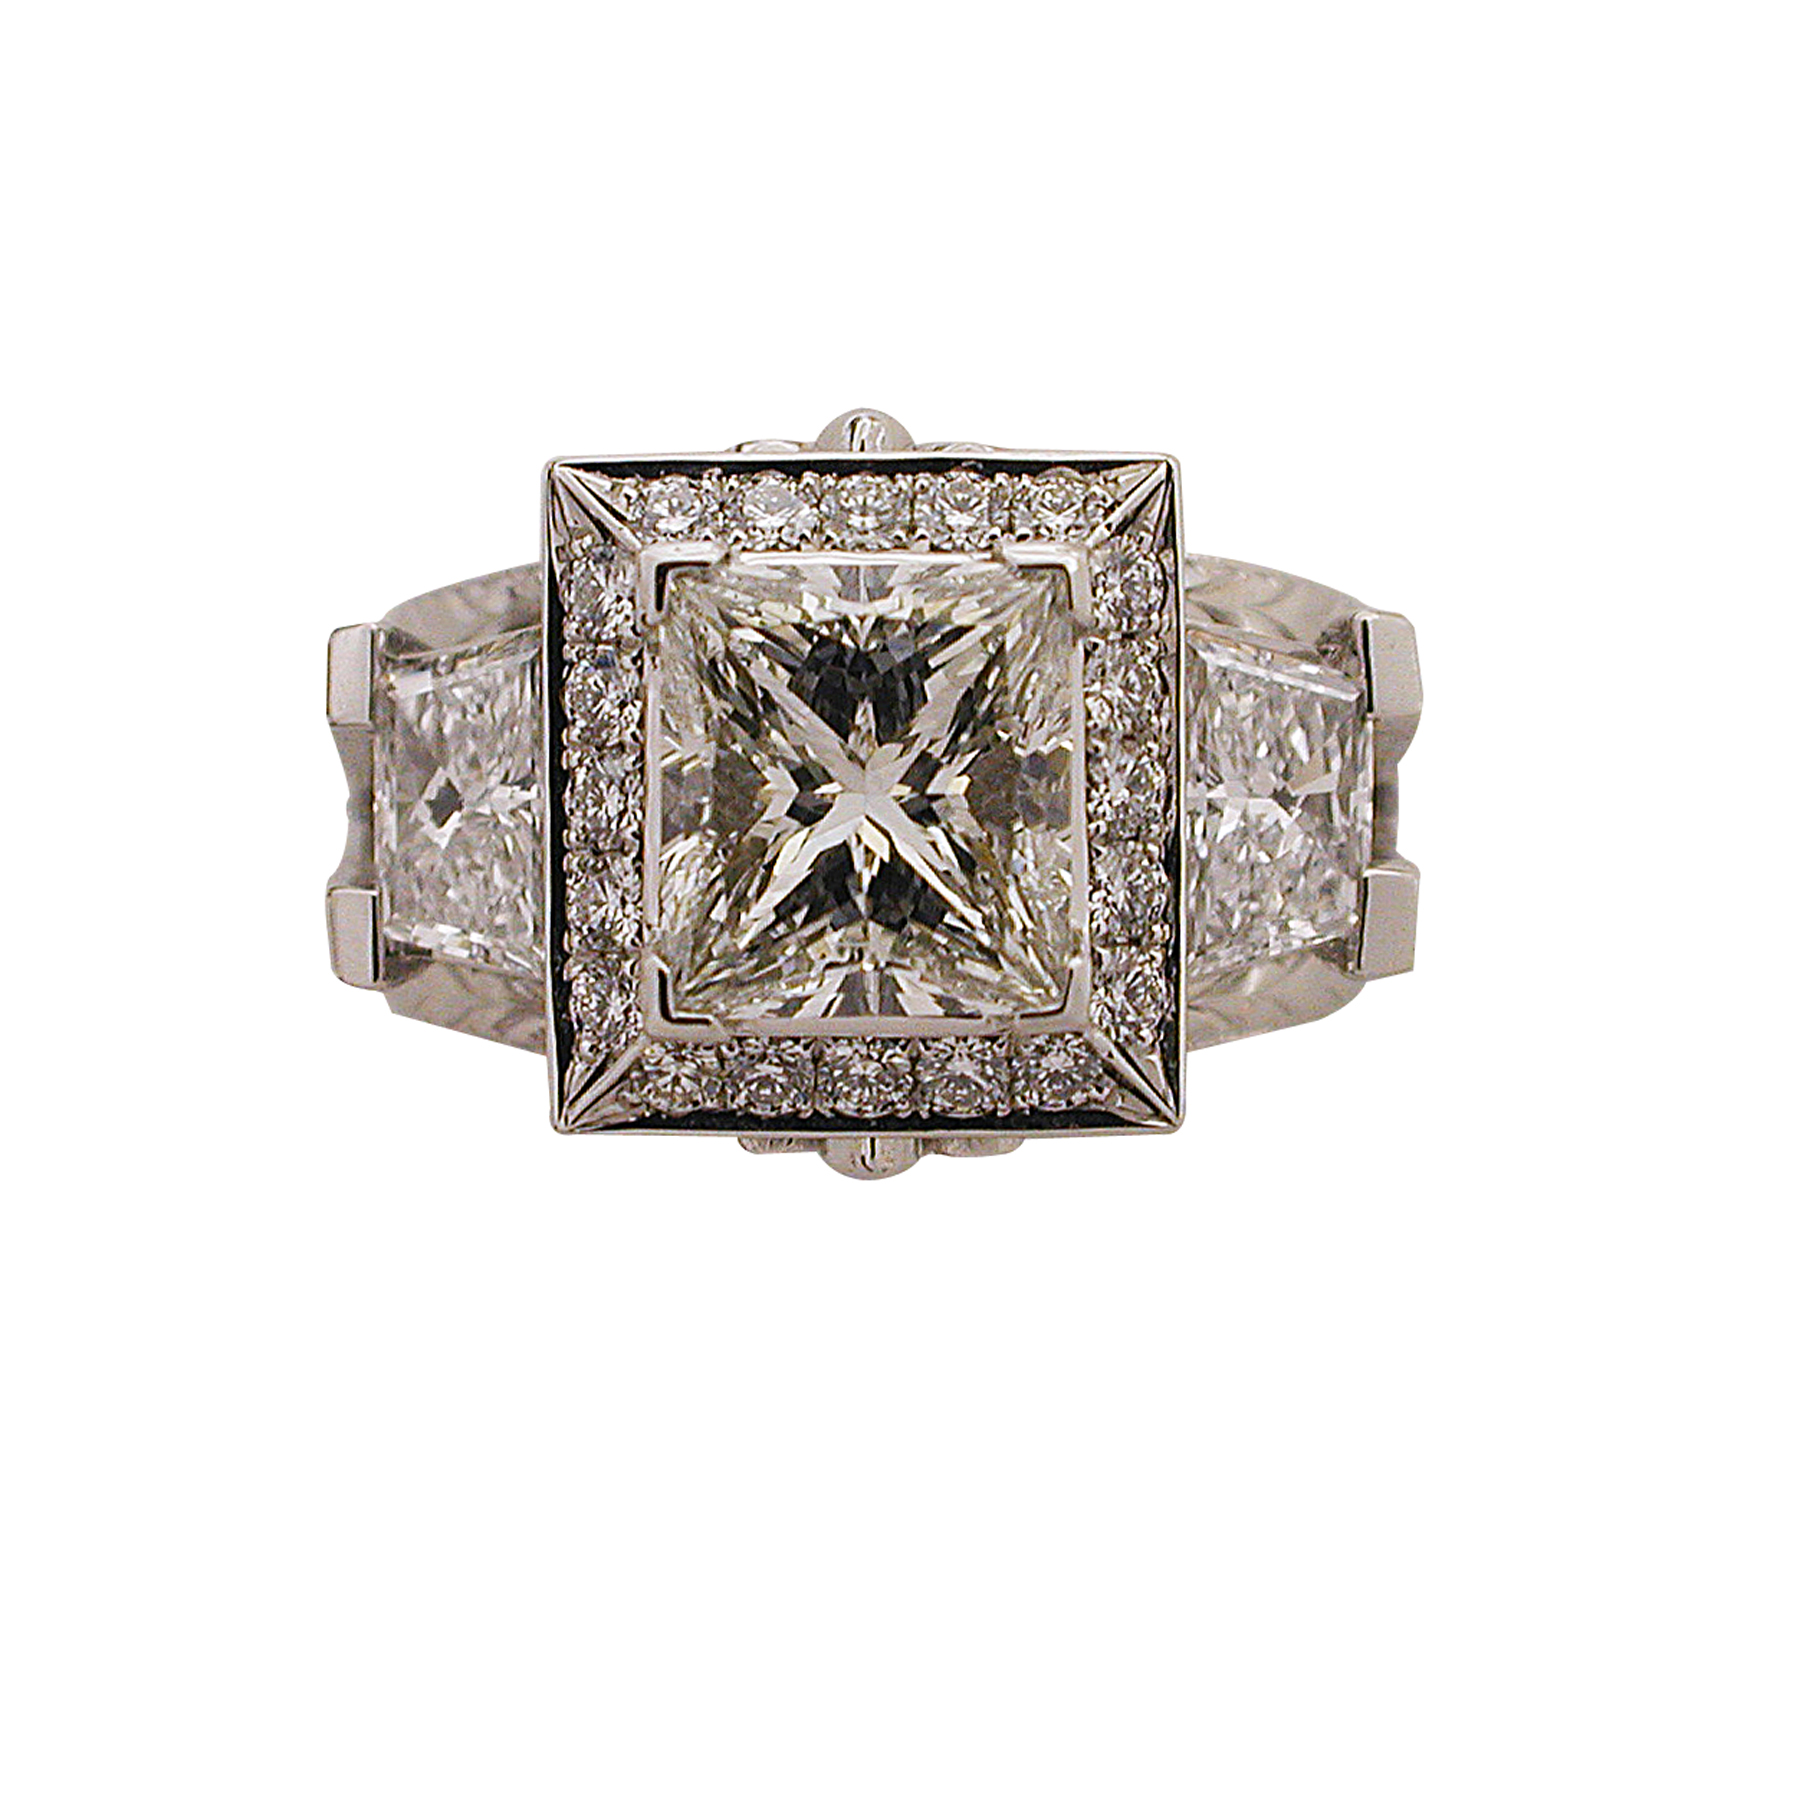 Platinum Princess Cut & Trapezoid Cut Diamond Ring - Top View